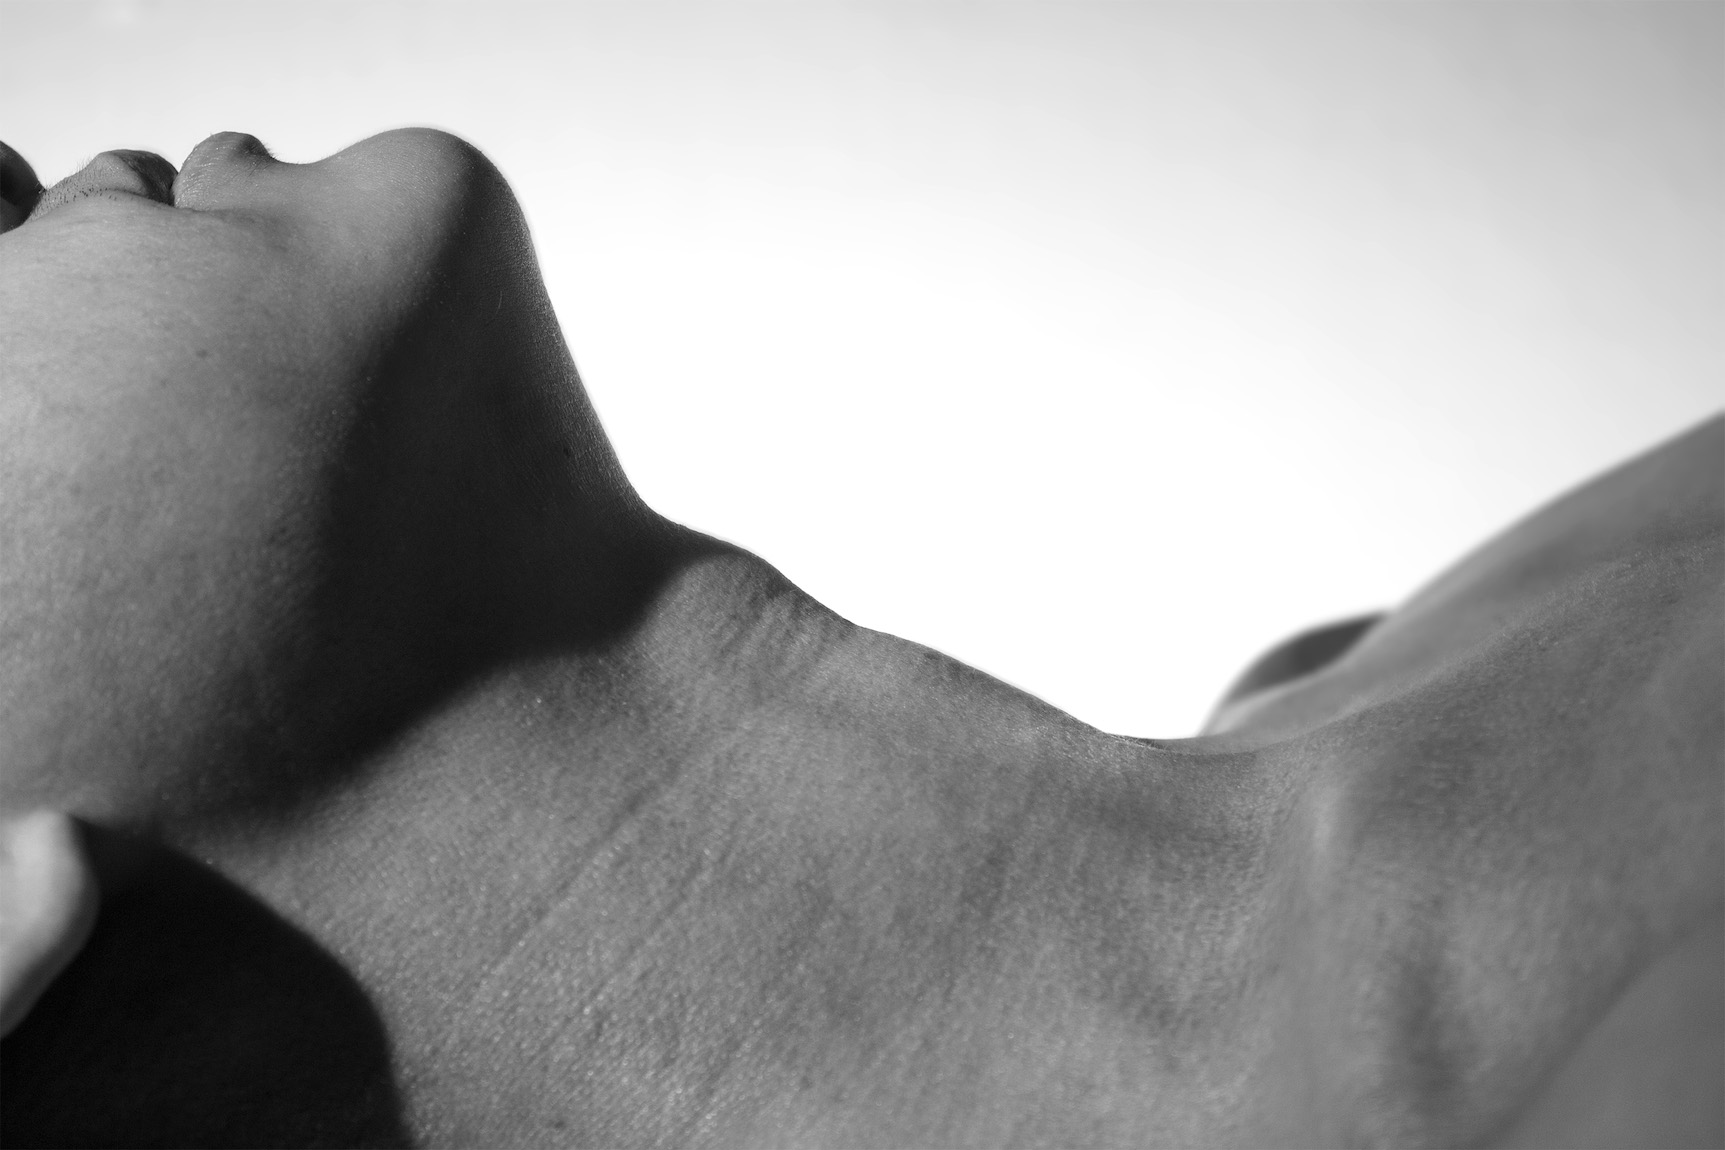 hannah kim's photograph of a woman's neck and chin in profile